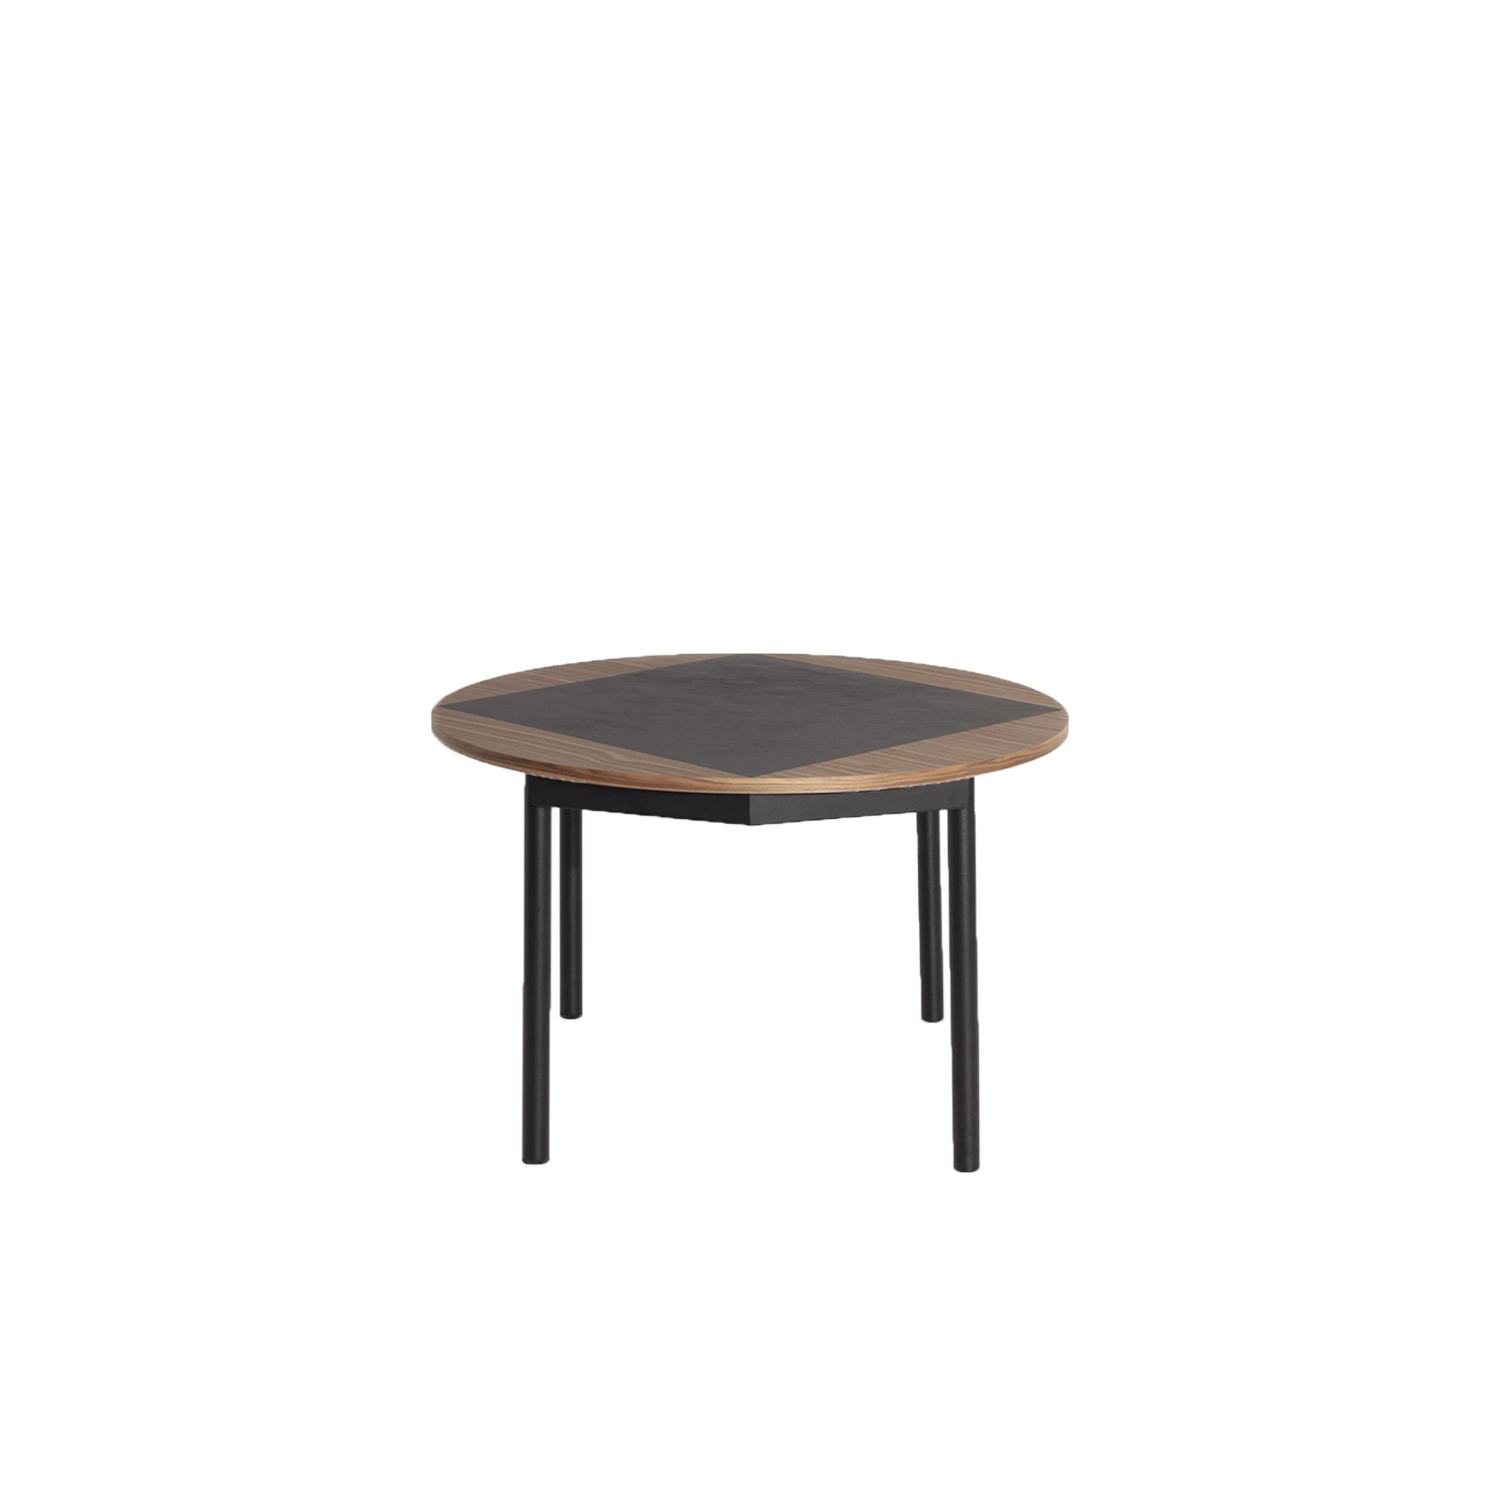 Tavla Round Wood Table - Tavla round wood table was born from the collaboration between Petite Friture team and Pool studio, a designing duo that has a faithful history with the Brand. They previously released together successful products like ISO A & ISO B side tables or the Grid sofa